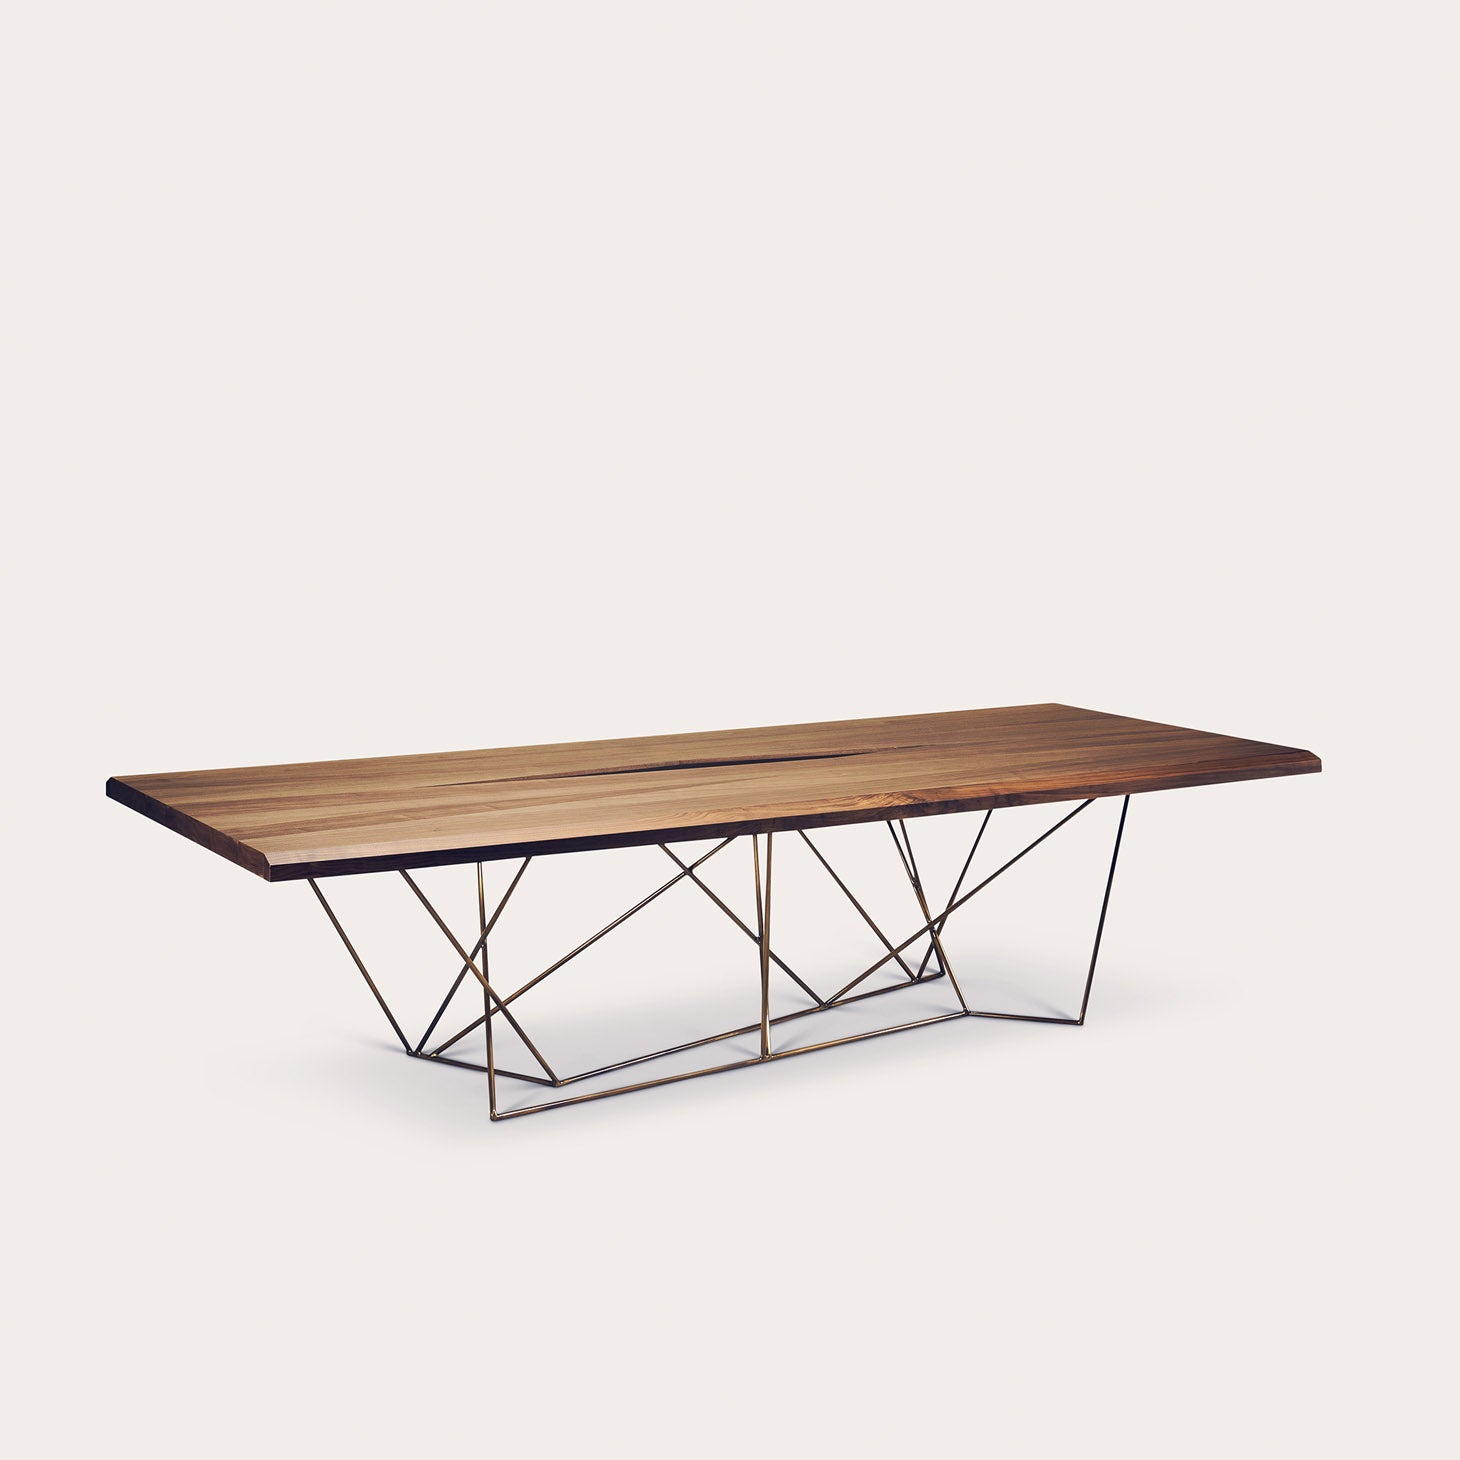 ASAN Tables Bruno Moinard Designer Furniture Sku: 773-230-10006